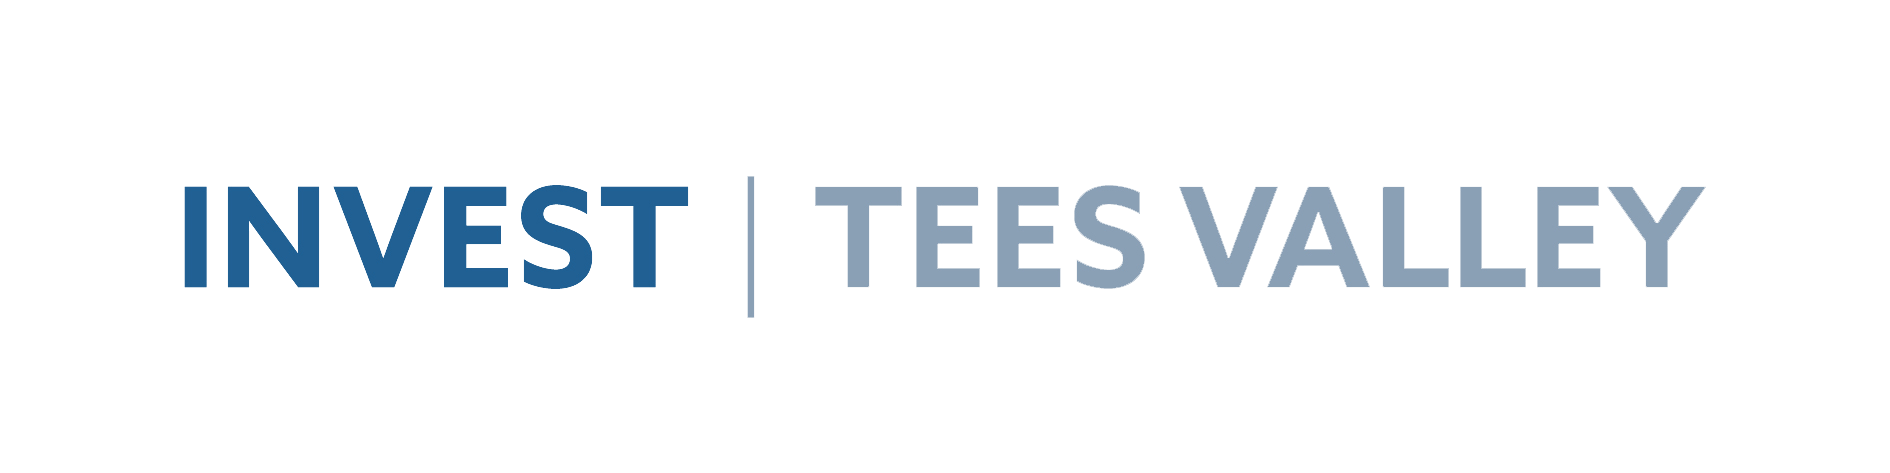 Invest In Tees Valley Logo